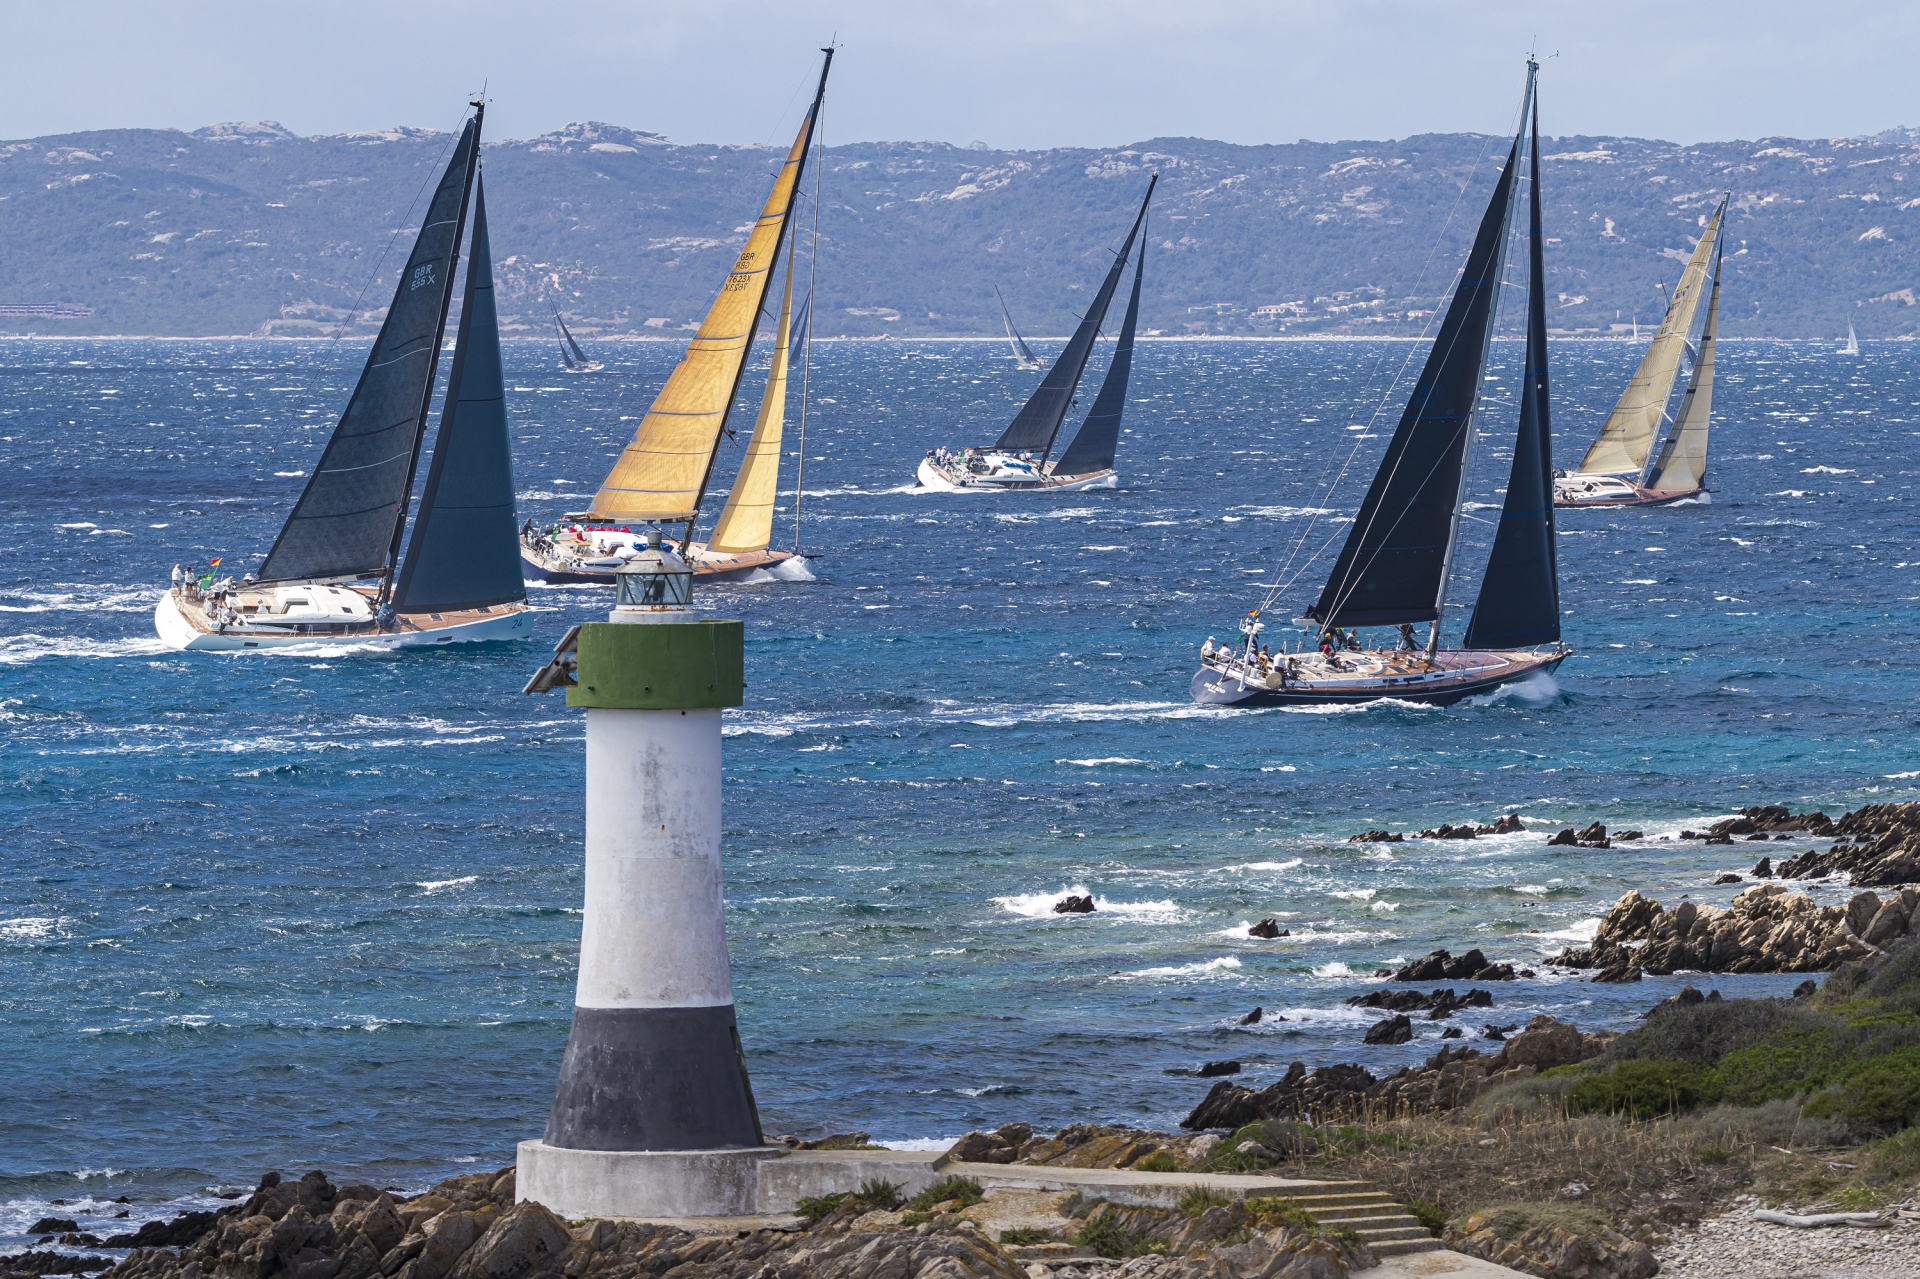 Maxi Yacht Rolex Cup and Rolex Swan Cup confirmed - NEWS - Yacht Club Costa Smeralda